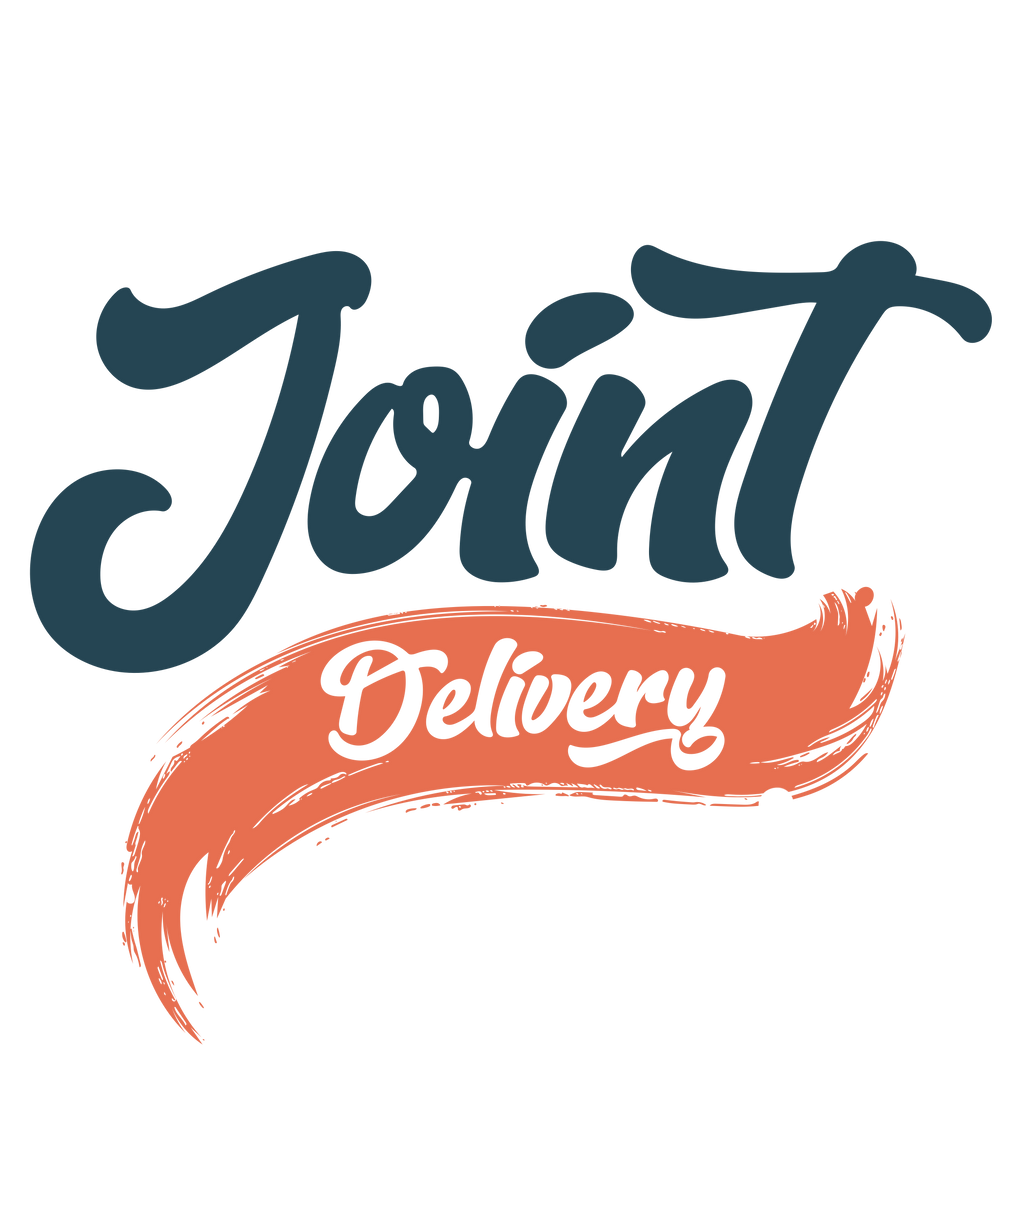 Joint Delivery Co. Hoodie Sweatshirt Package